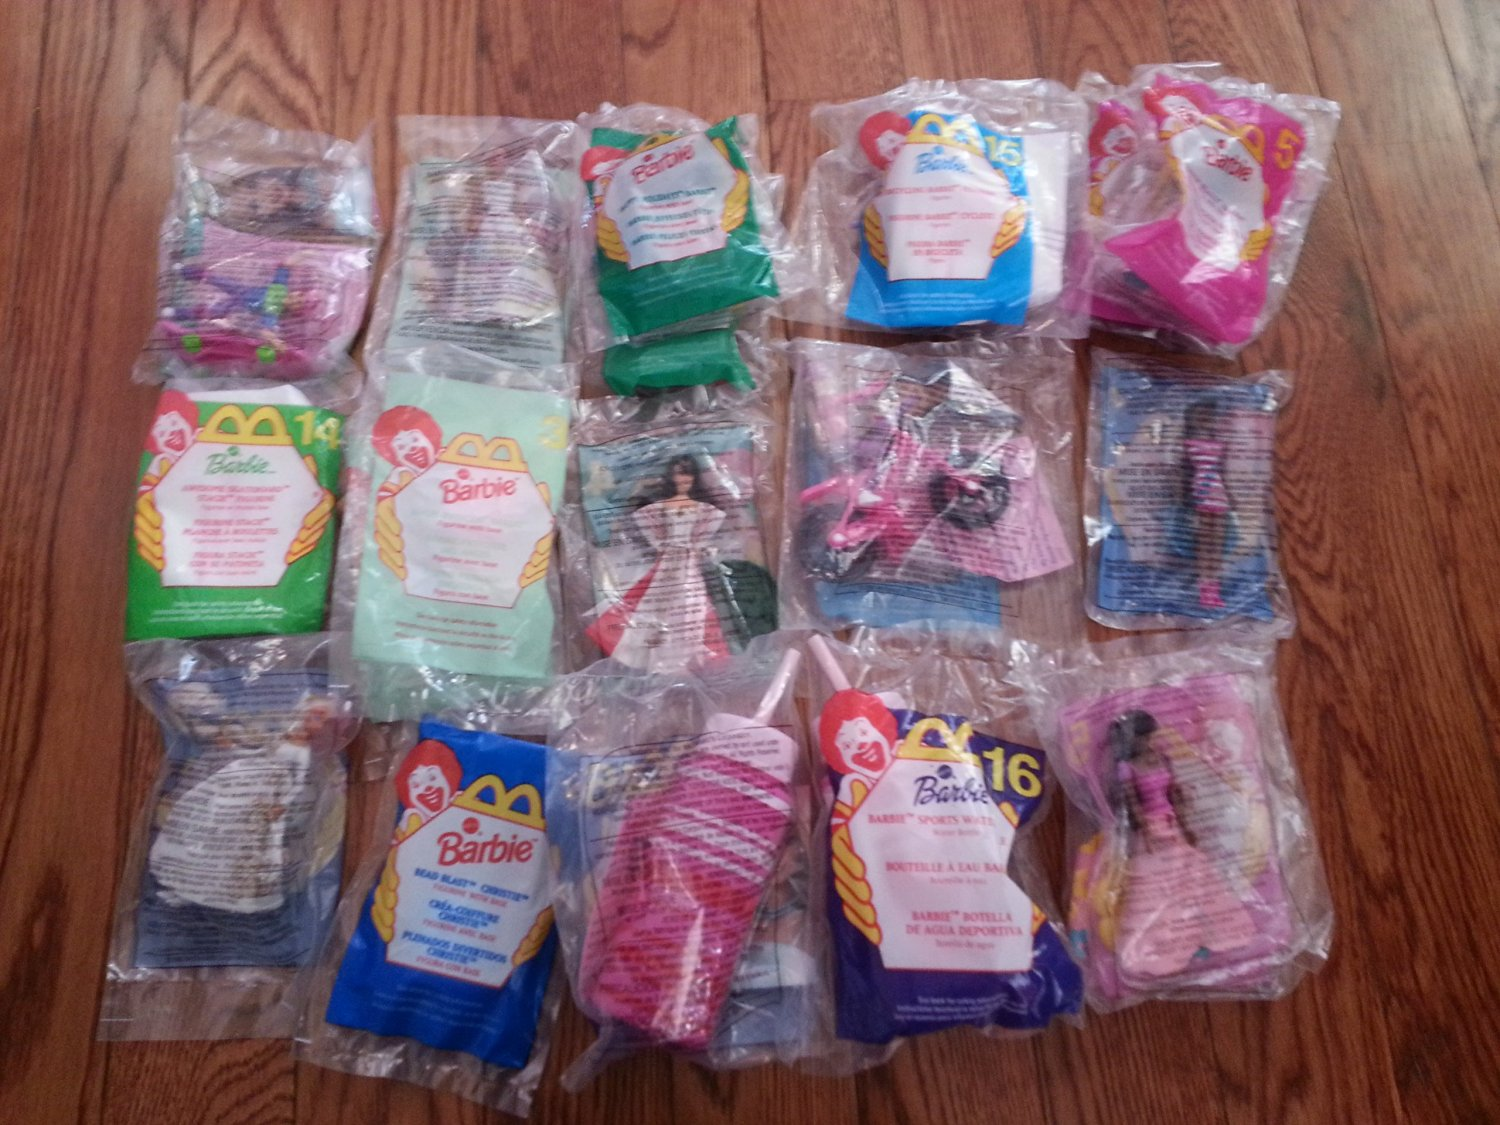 McDonalds Vintage Barbie Figures lot of 20. Great for Birthday Party Favors and Gifts Etc. Includes 2 Awesome Skateboarder, 3 Angel Princes, 3 Happy Holidays, 2 Bicycling, 5 Blossom Beauty, 1 Wedding Rapunzel, 2 Bead Blast, and 2 Sports Water Bottle.